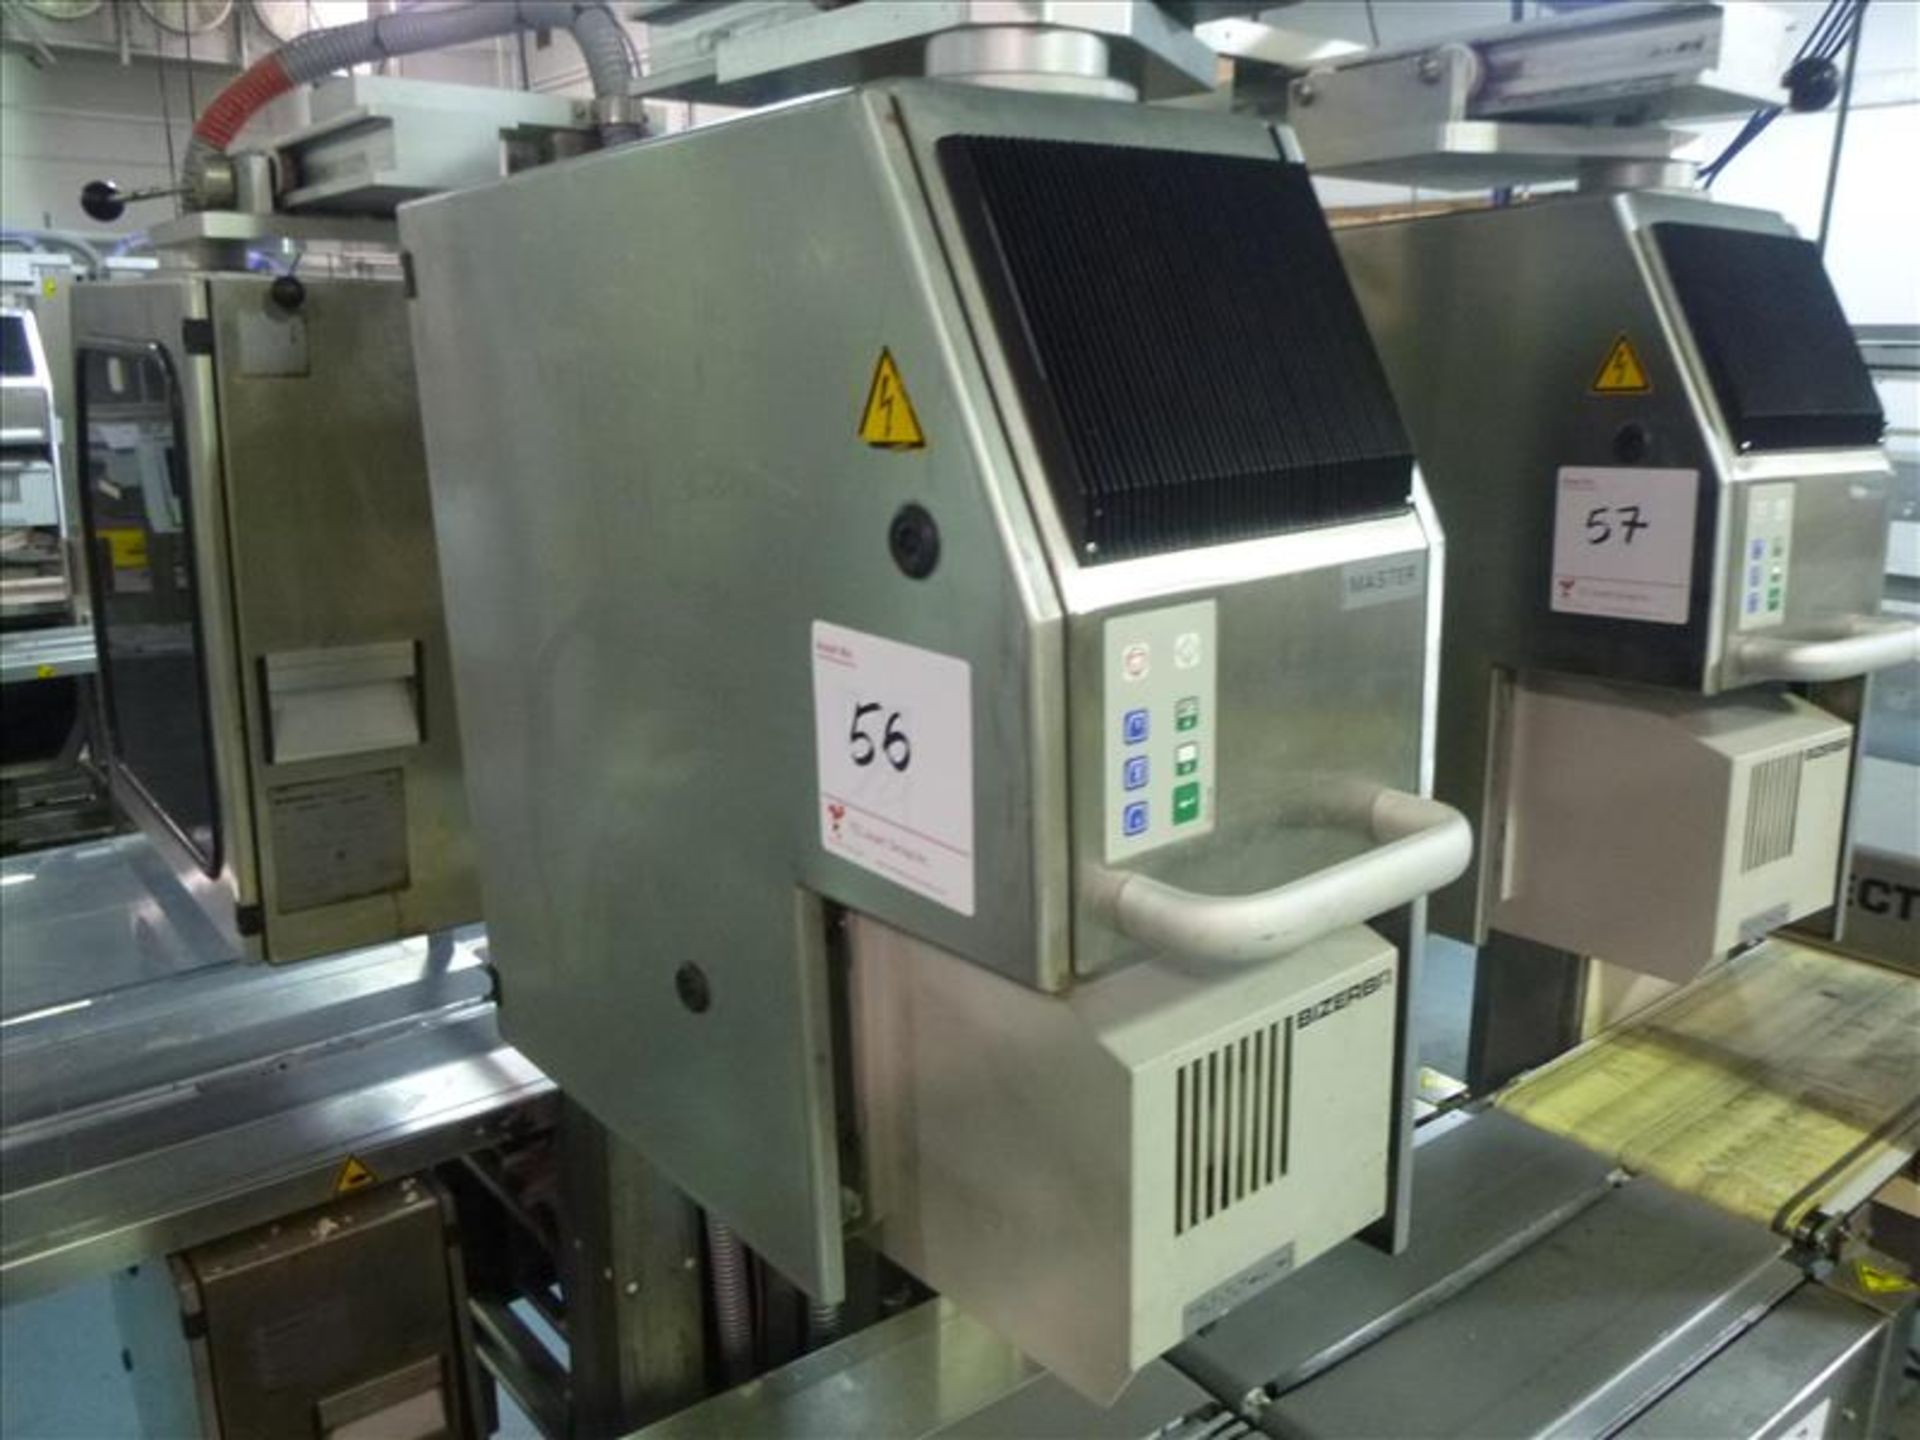 Lot 56 - Bizerba in-line check-weigher system (MASTER) w/ Bizerba GS label printer and Bizerba AB controller,